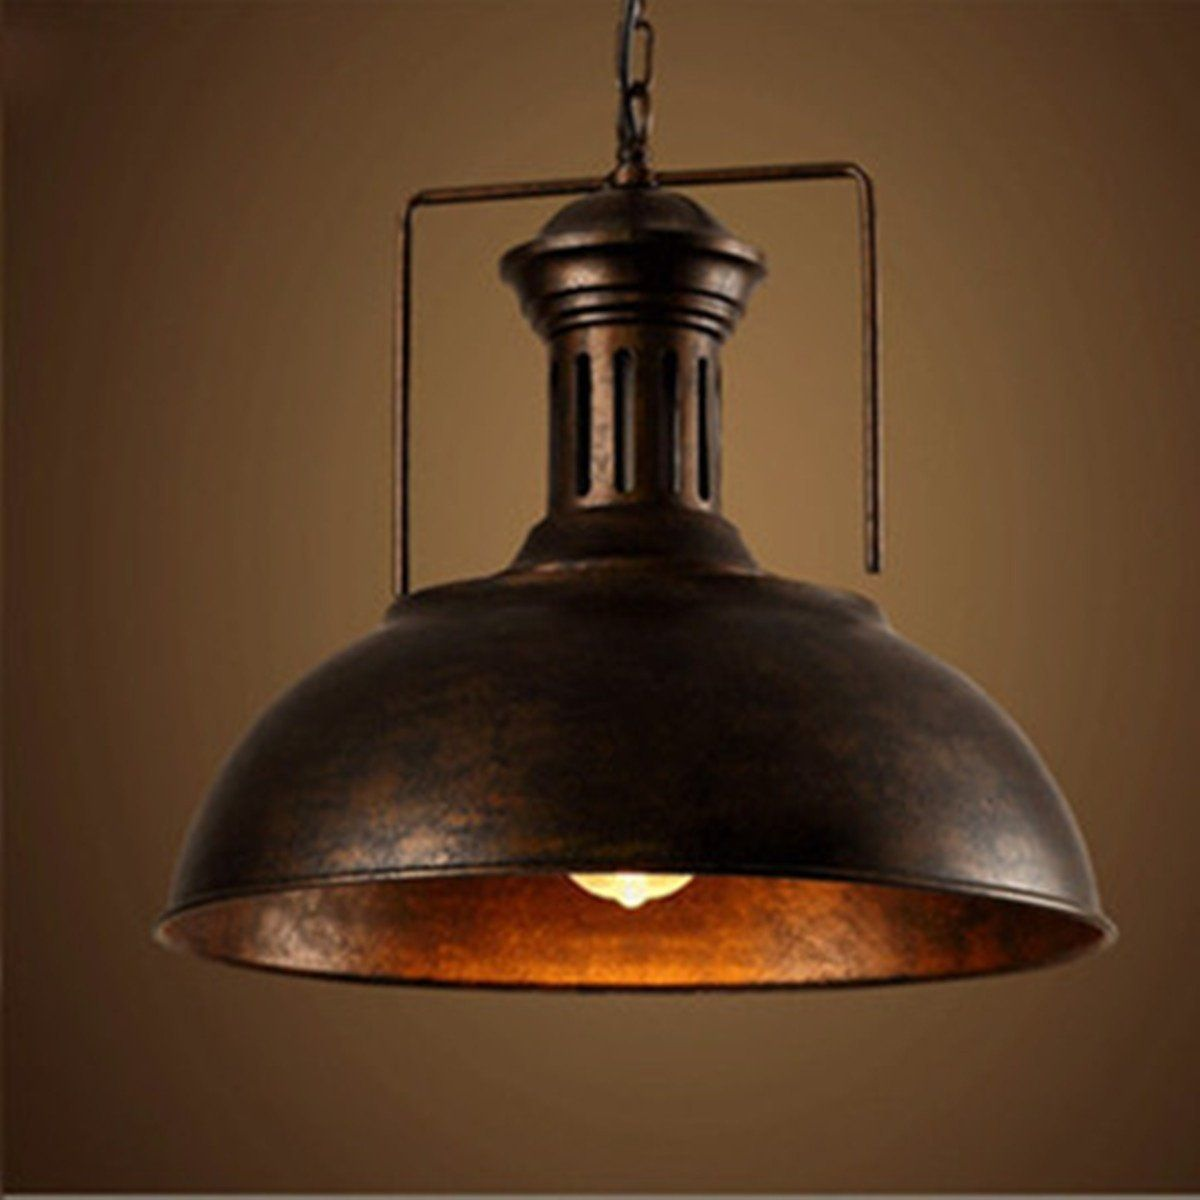 bcf193acf08 Vintage Retro Industrial Ceiling Light Lamp Shade Fixture Lighting Cafe  Home Decor (Color  Black